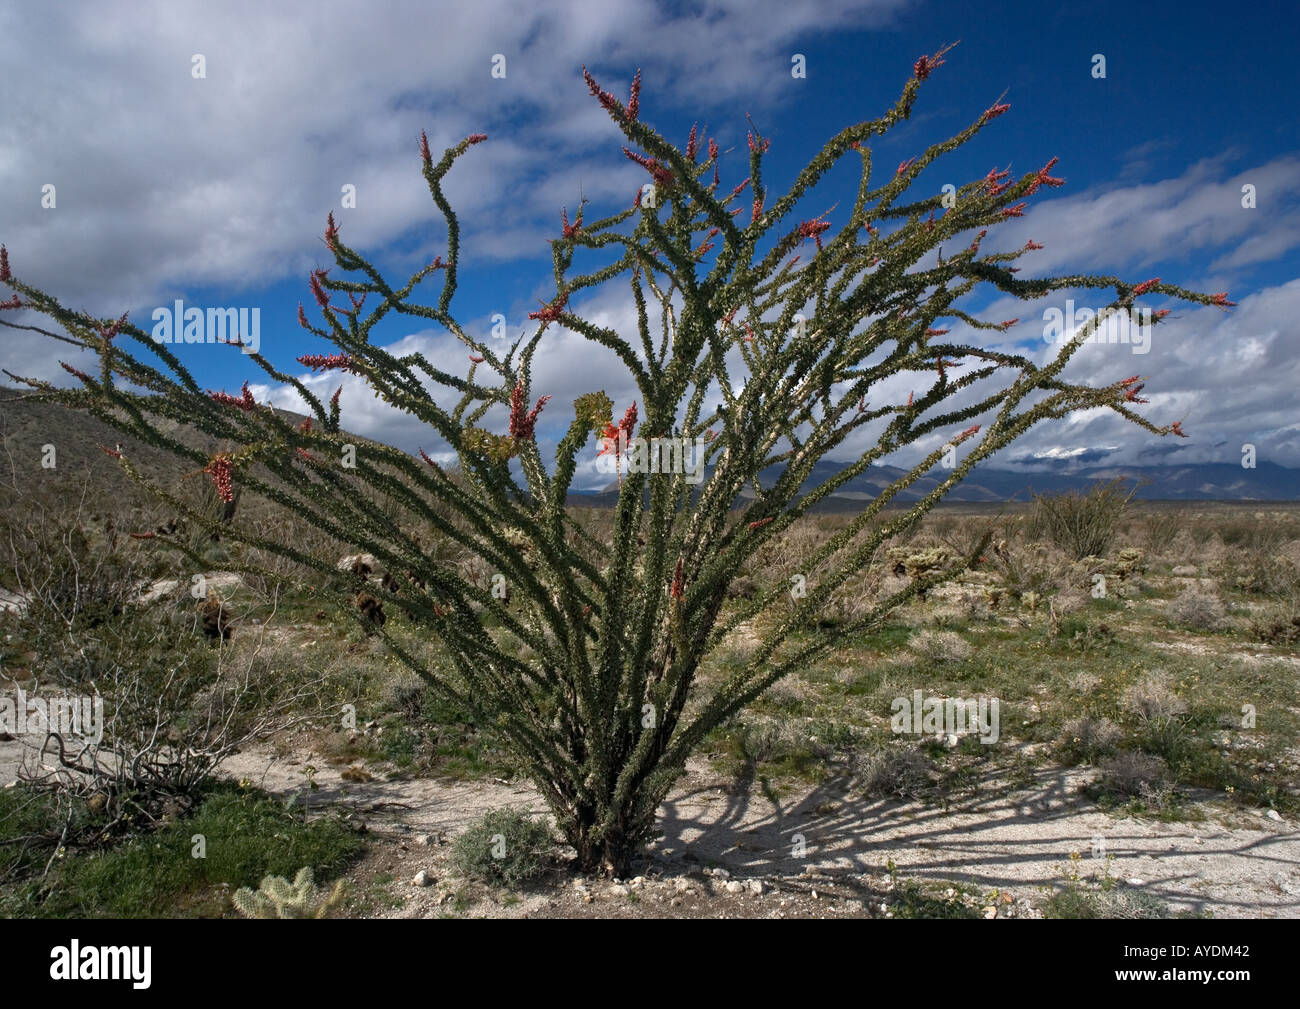 Ocotillo or candlewood (Fouquieria splendens) Adapted to desert life, able to sprout leaves whenever it rains - Stock Image